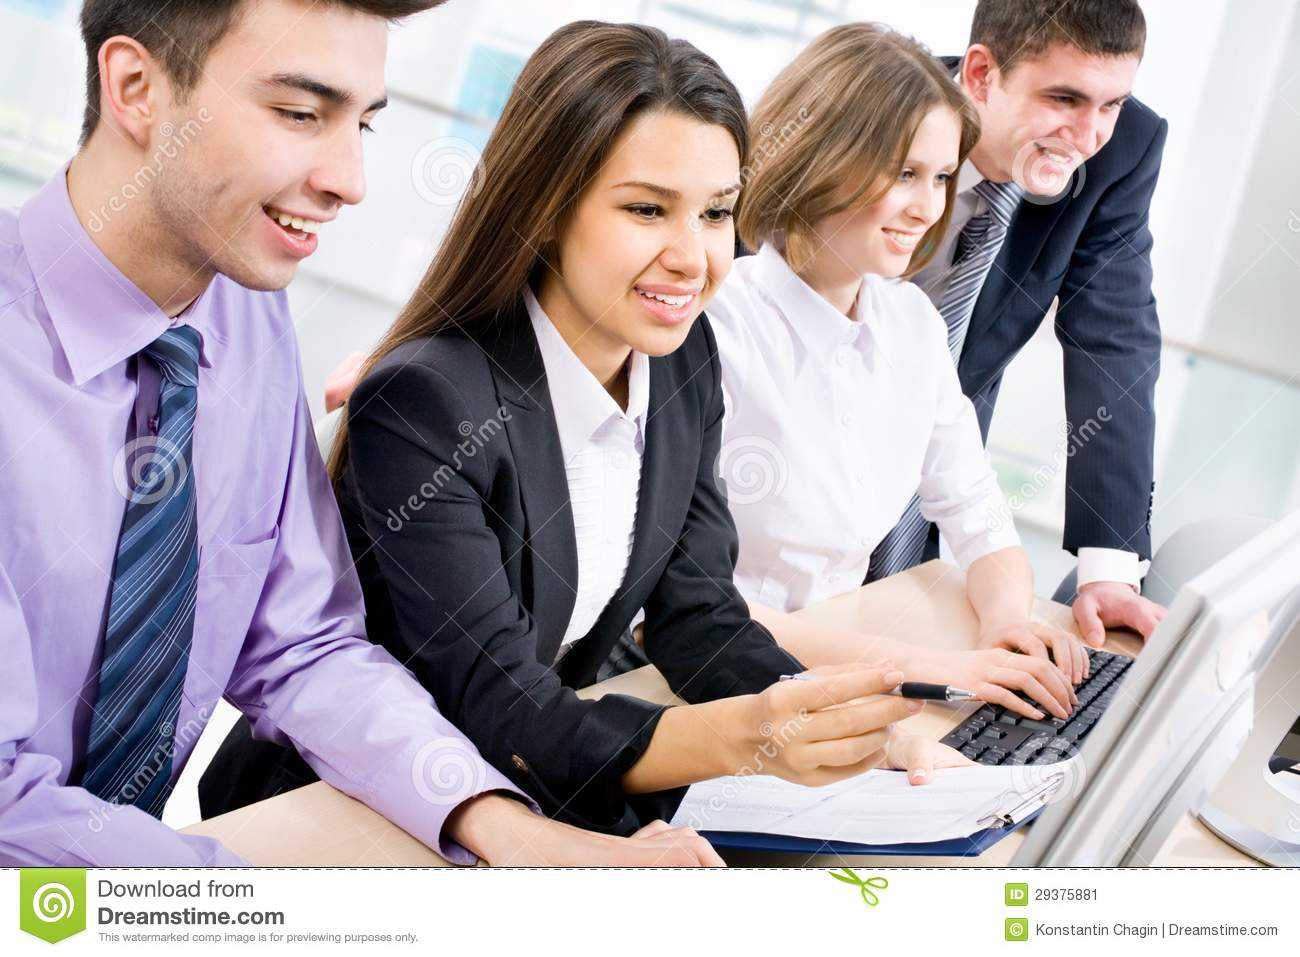 computer in business essay